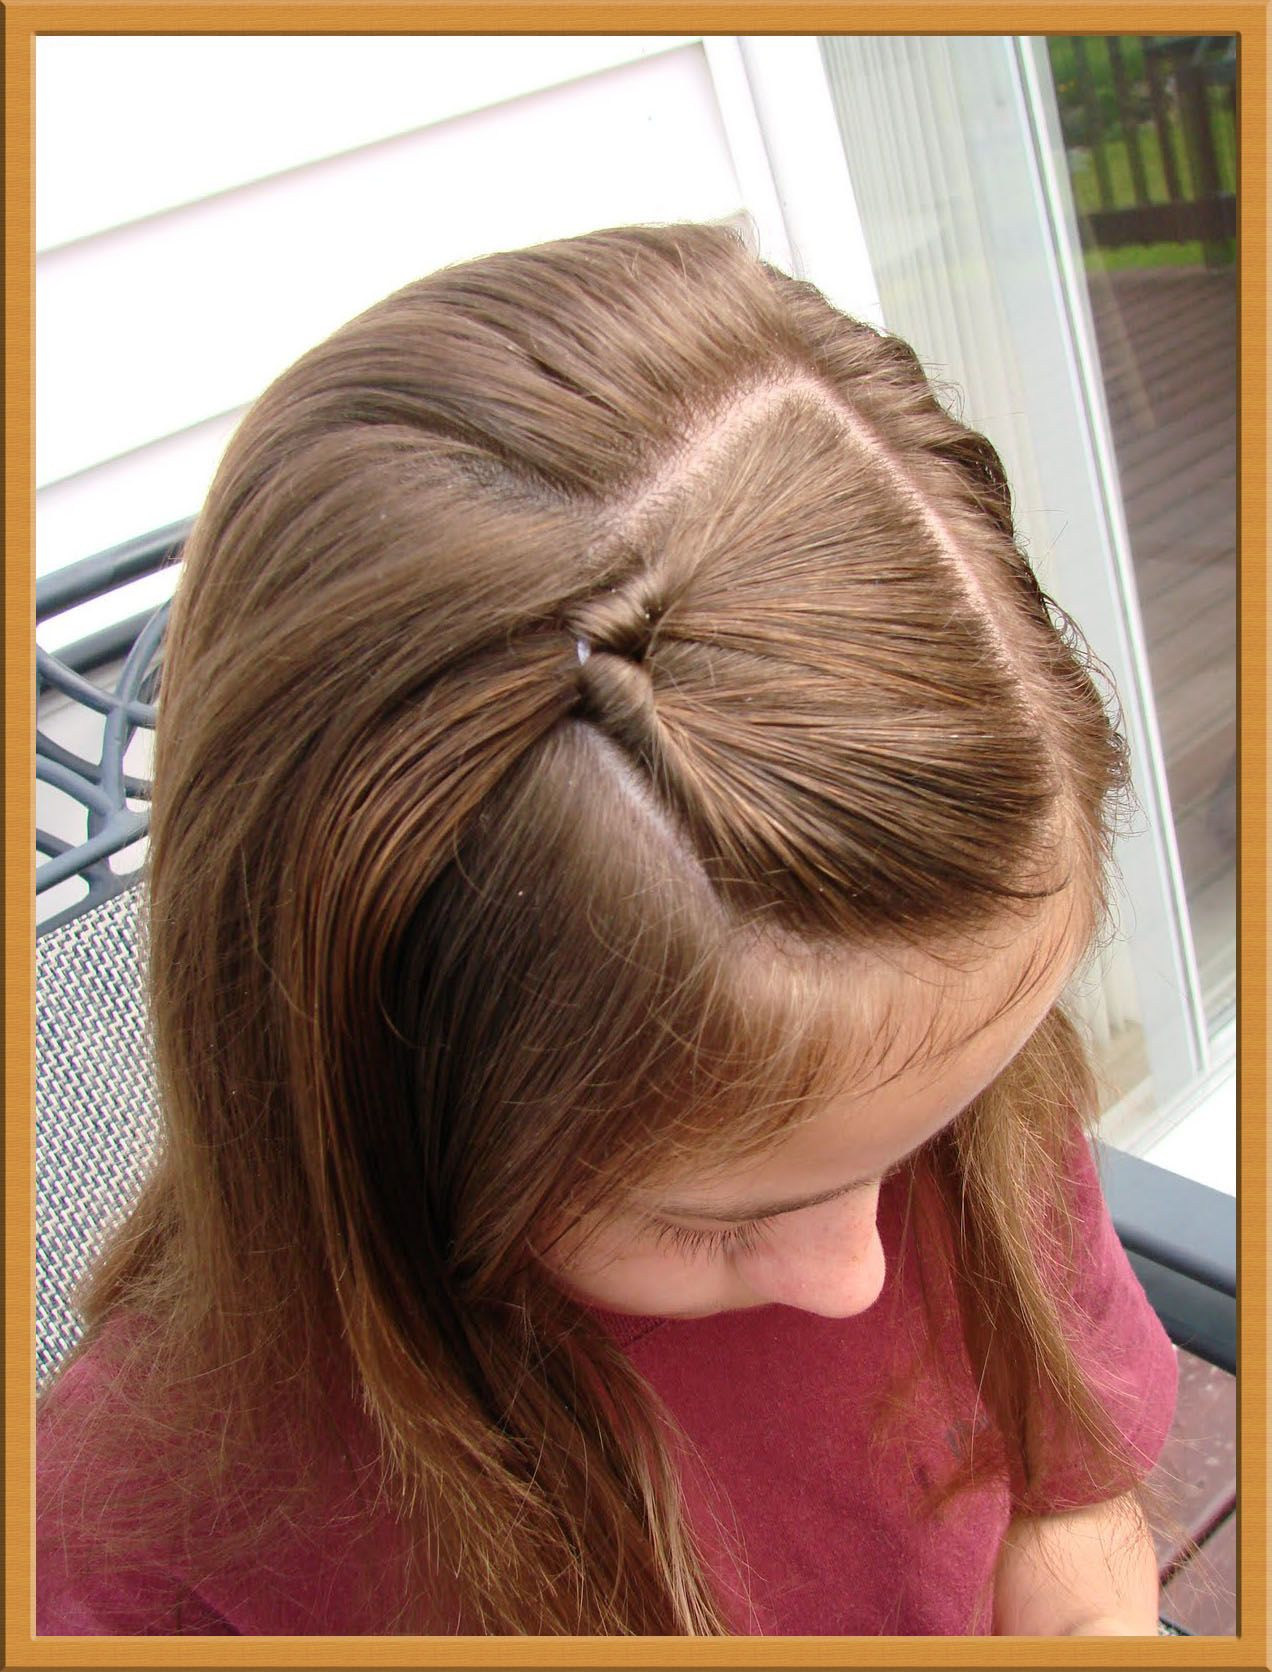 5 Habits Of Highly Effective Hair Styles – 2021